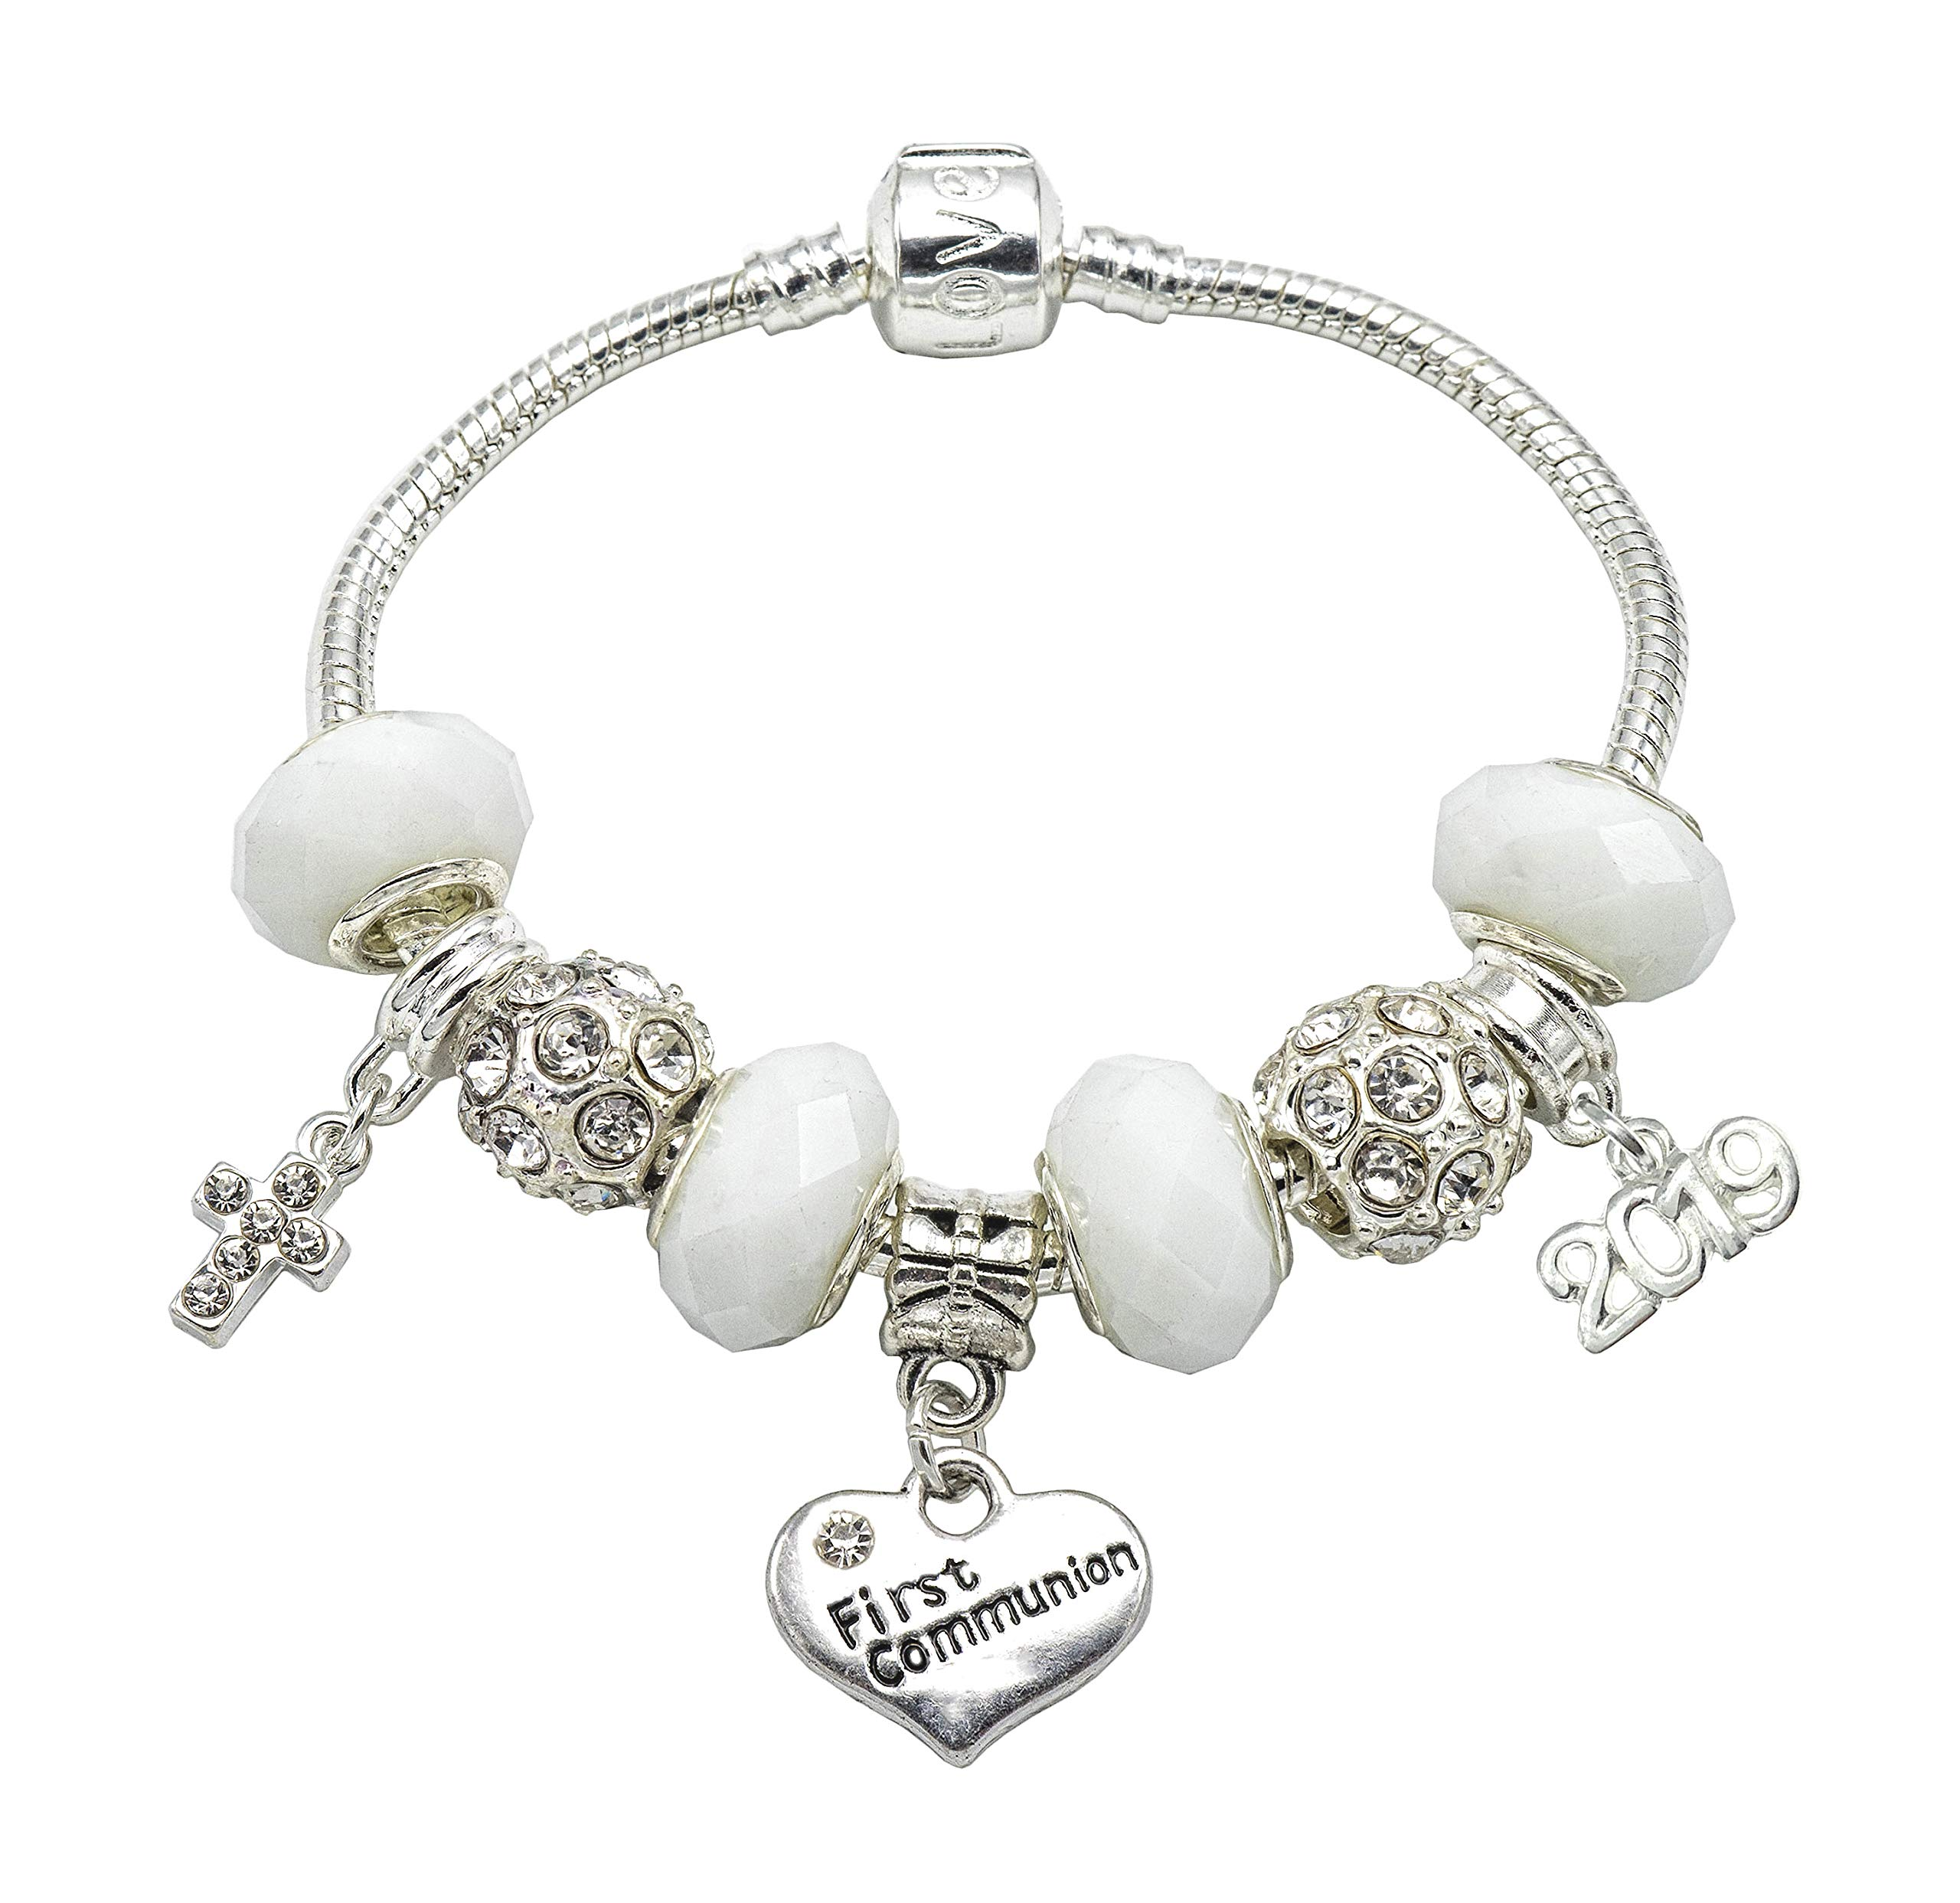 2018 Silver Plated First Holy Communion Charm Bracelet for Girls